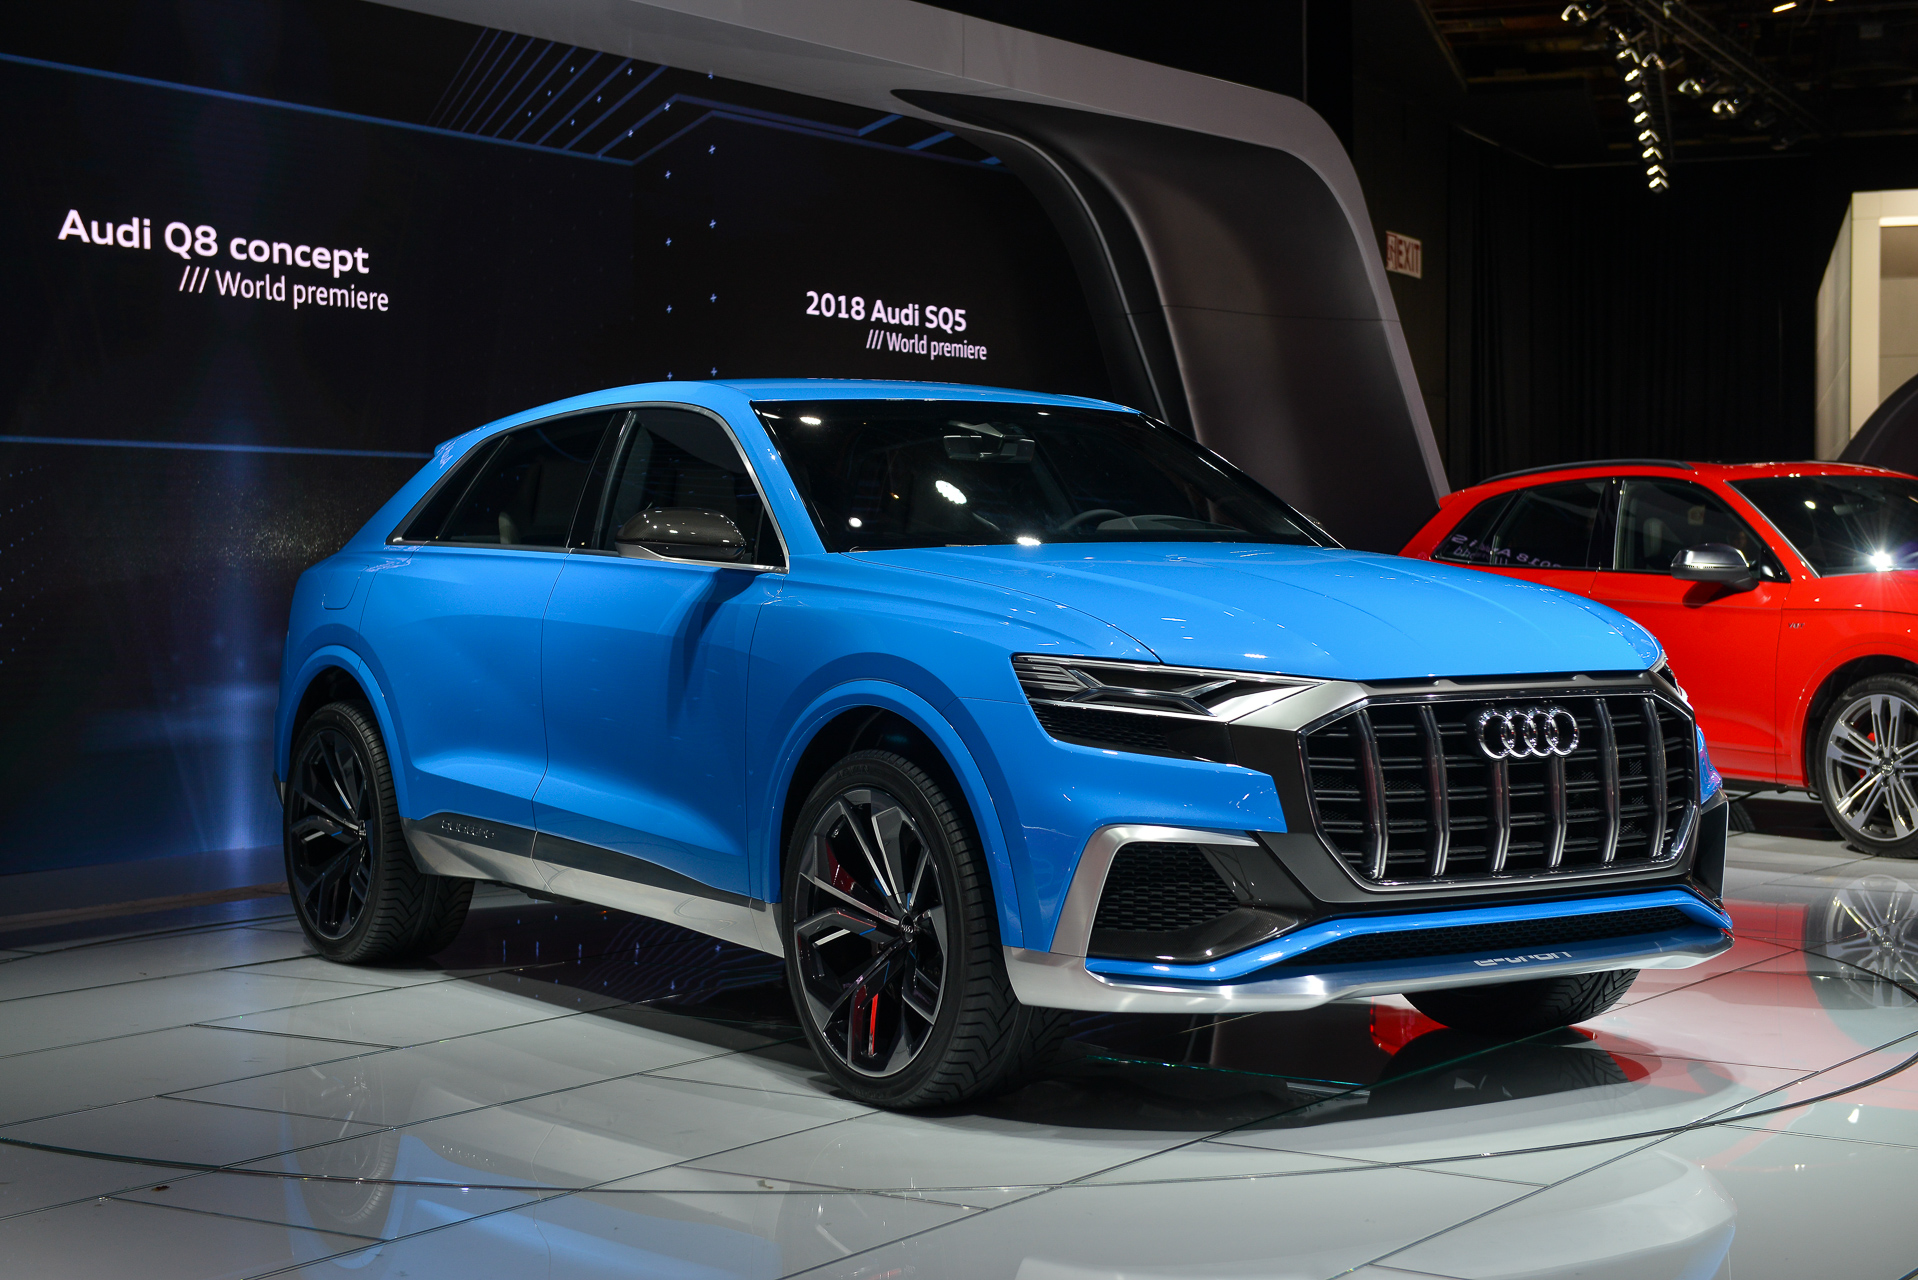 Show Off Blow Off Audi Joins Other Luxury Makes To Skip